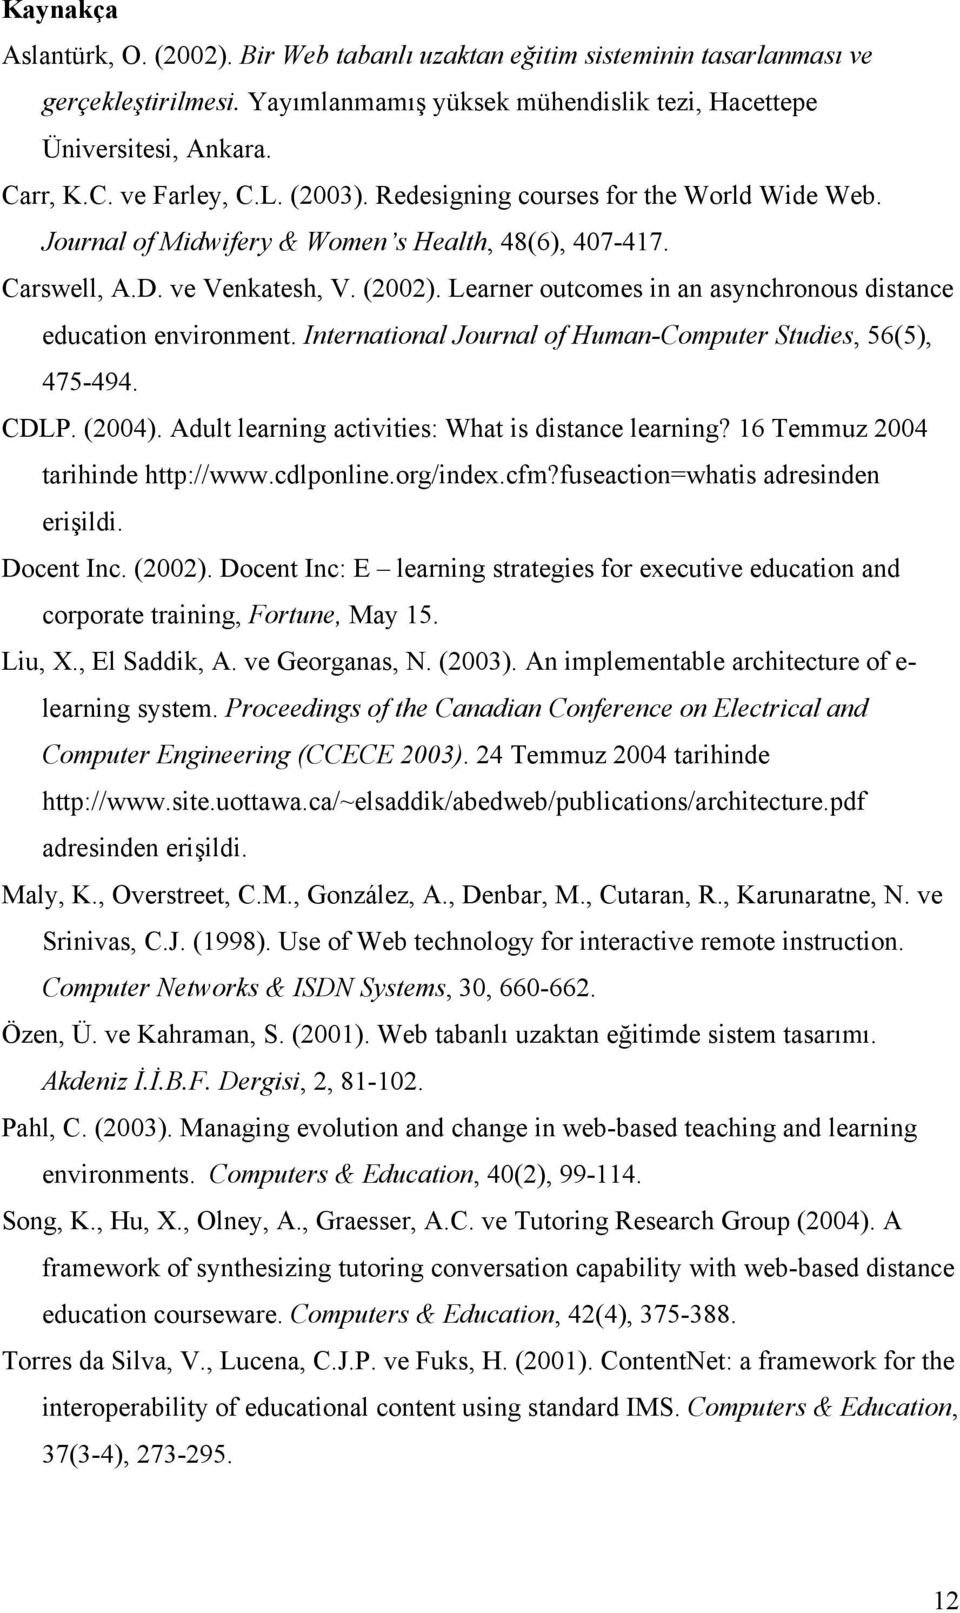 Learner outcomes in an asynchronous distance education environment. International Journal of Human-Computer Studies, 56(5), 475-494. CDLP. (2004). Adult learning activities: What is distance learning?